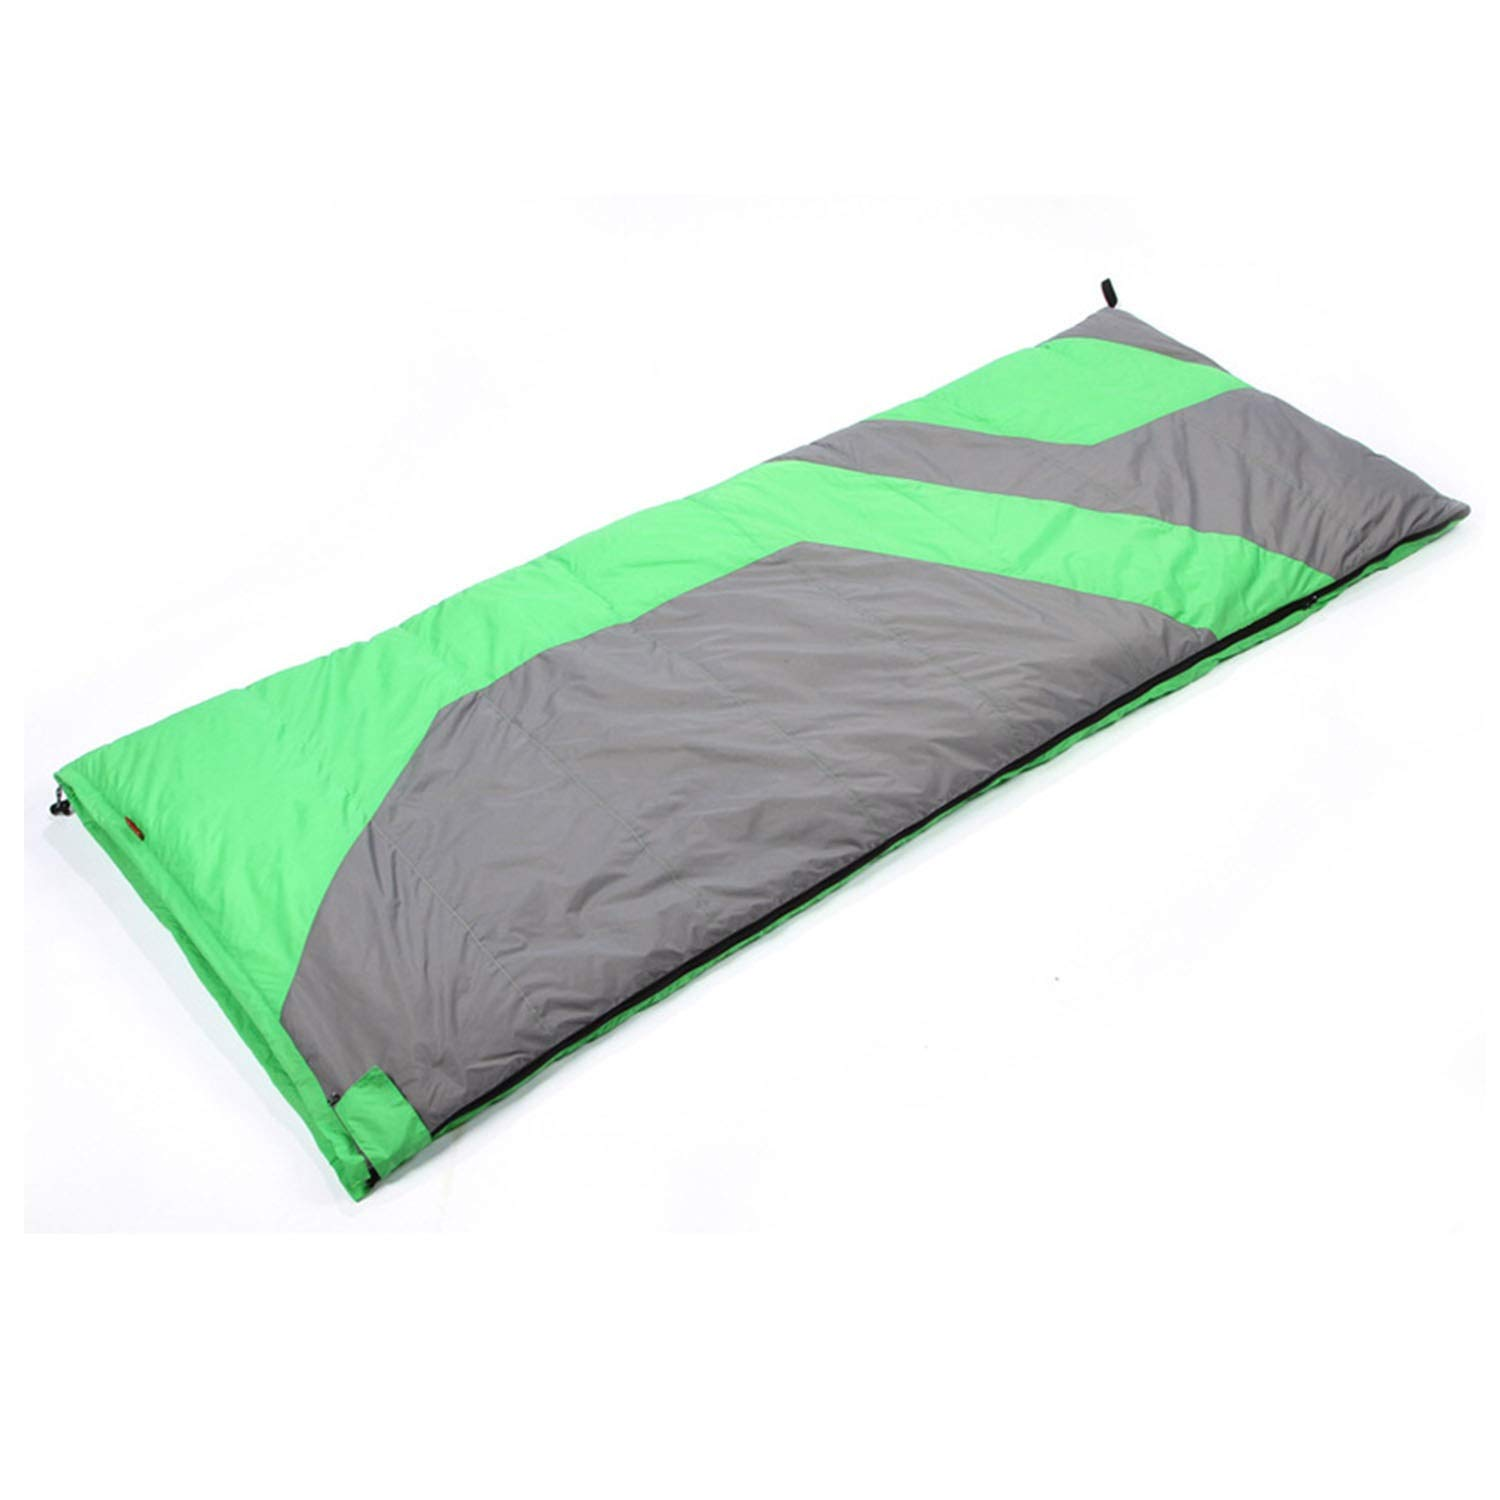 YOZOOE Portable Camping Supplies-Outdoor Light Down Sleeping Bag, -25 Degree Autumn and Winter Double Envelope Sleeping Bag (Color : Green) by YOZOOE